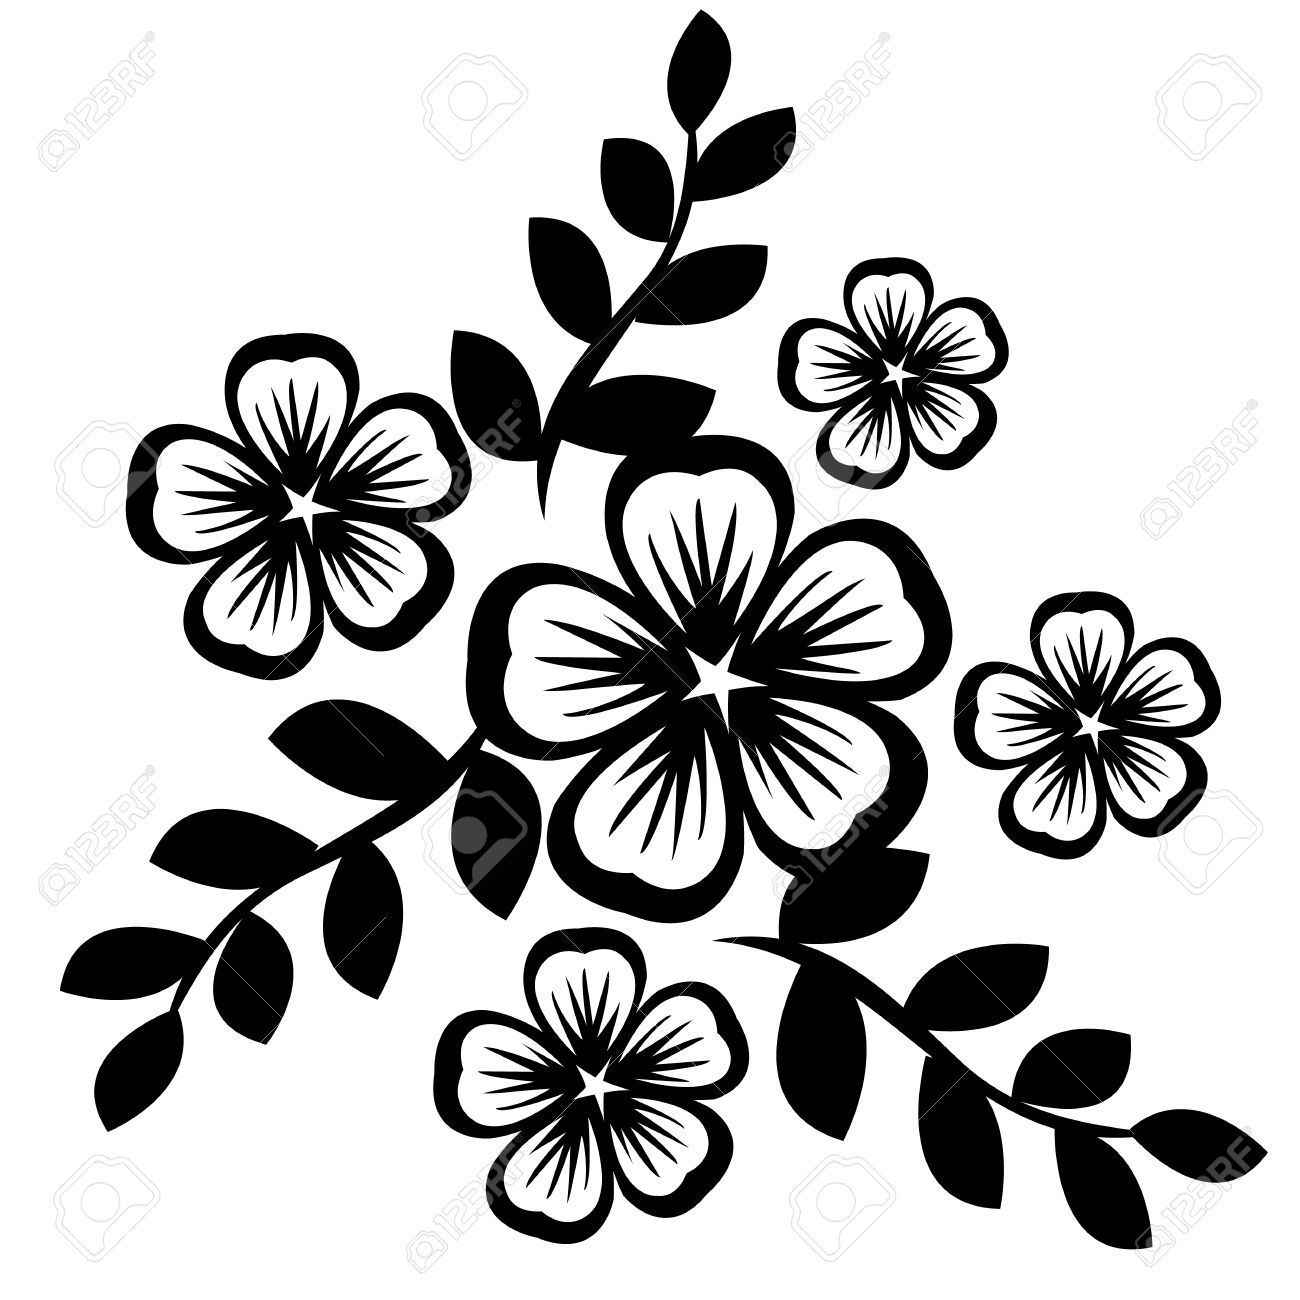 Black Silhouette Of Flowers Isolated On White Royalty Free Cliparts